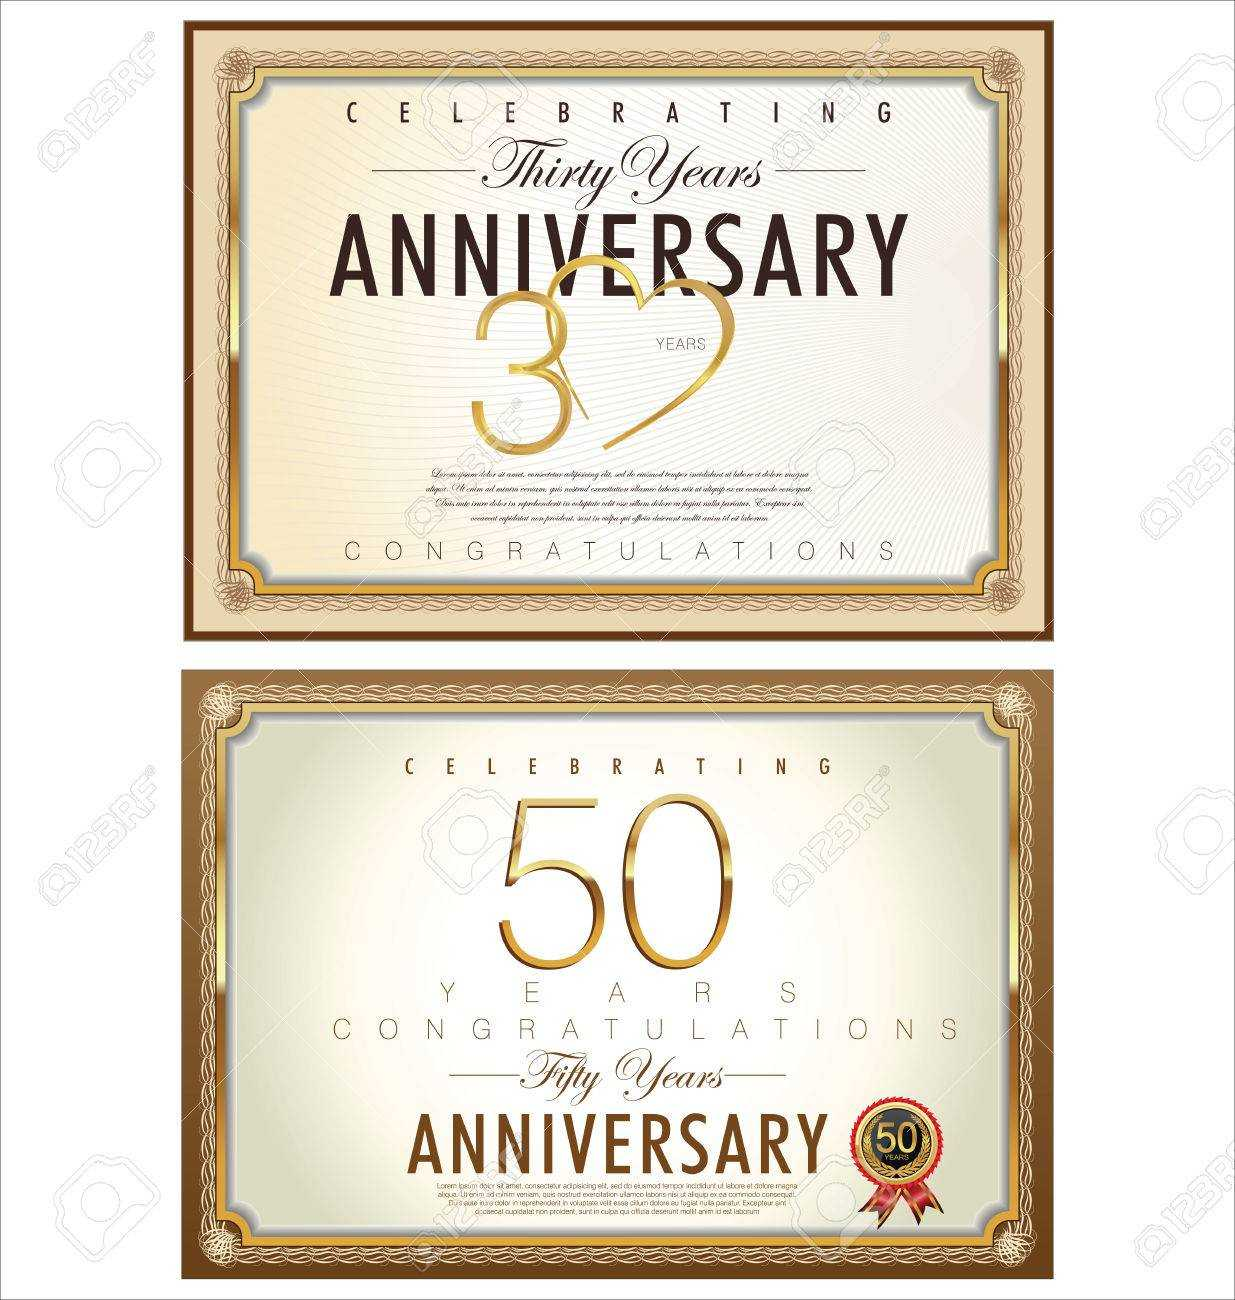 Anniversary Certificate Template With Anniversary Certificate Template Free